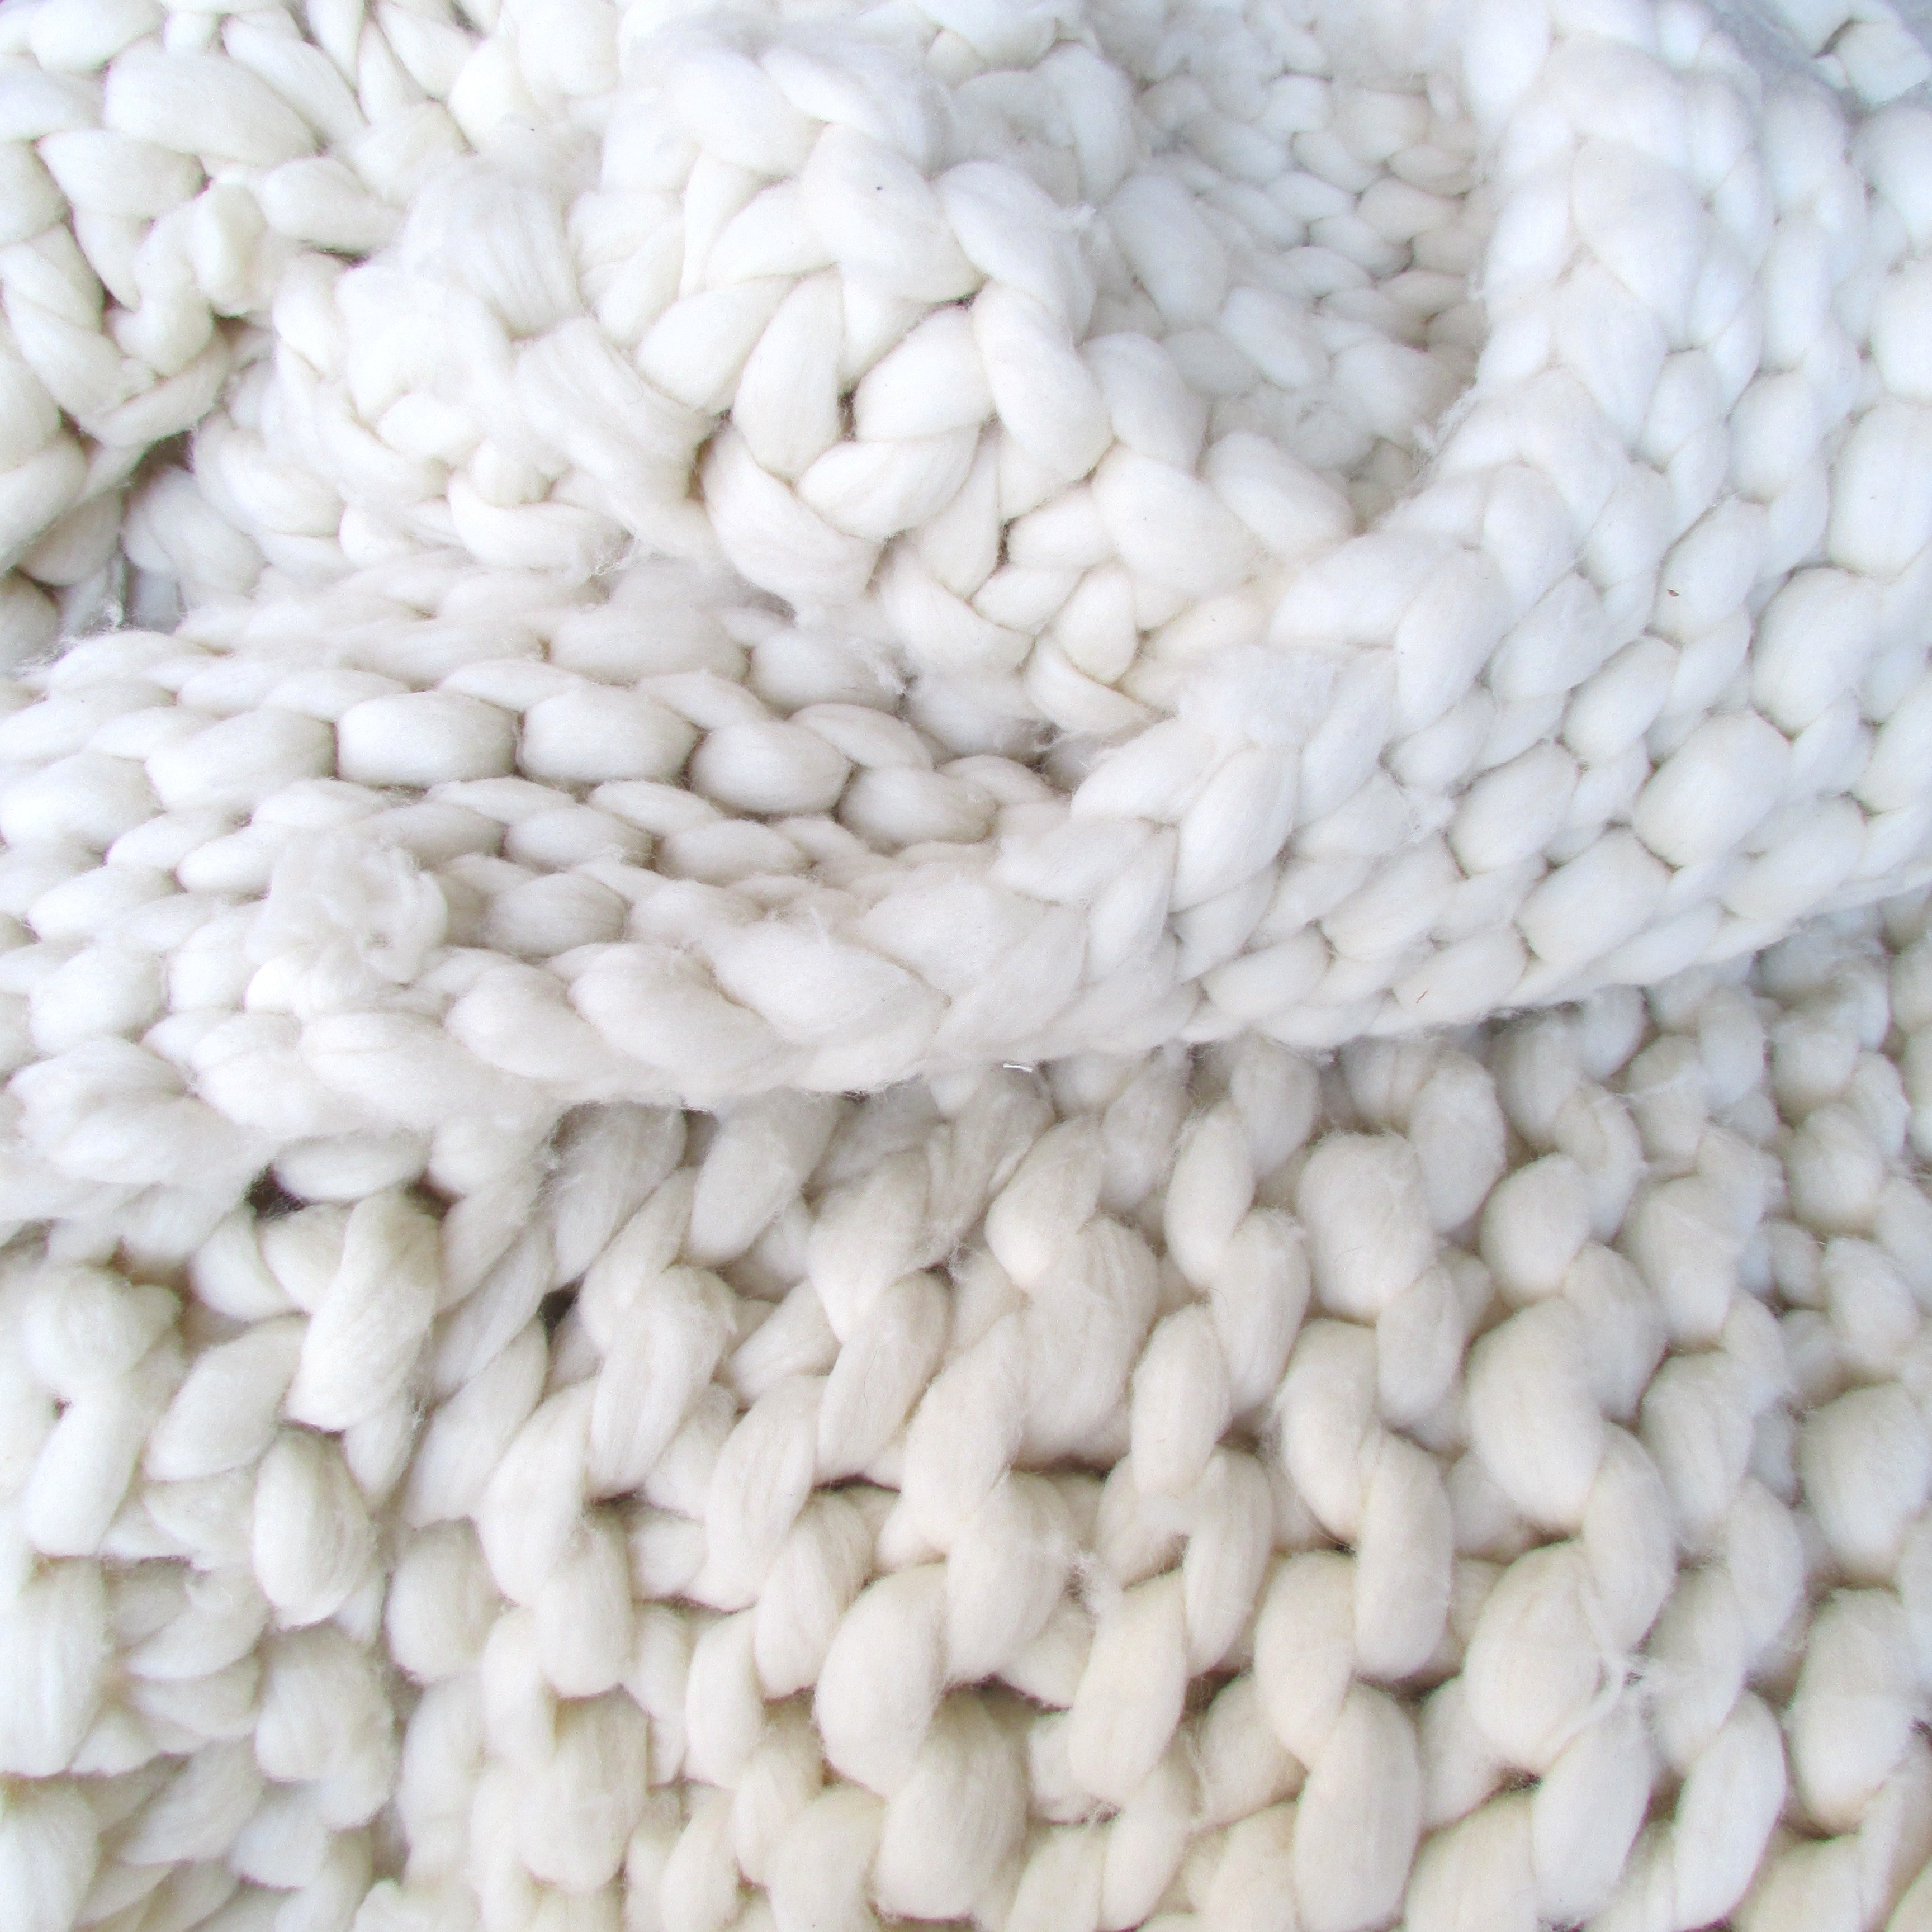 Chunky Wool Blanket Awesome Chunky Knit Wool Blanket Francois Et Moi Of Incredible 43 Pictures Chunky Wool Blanket